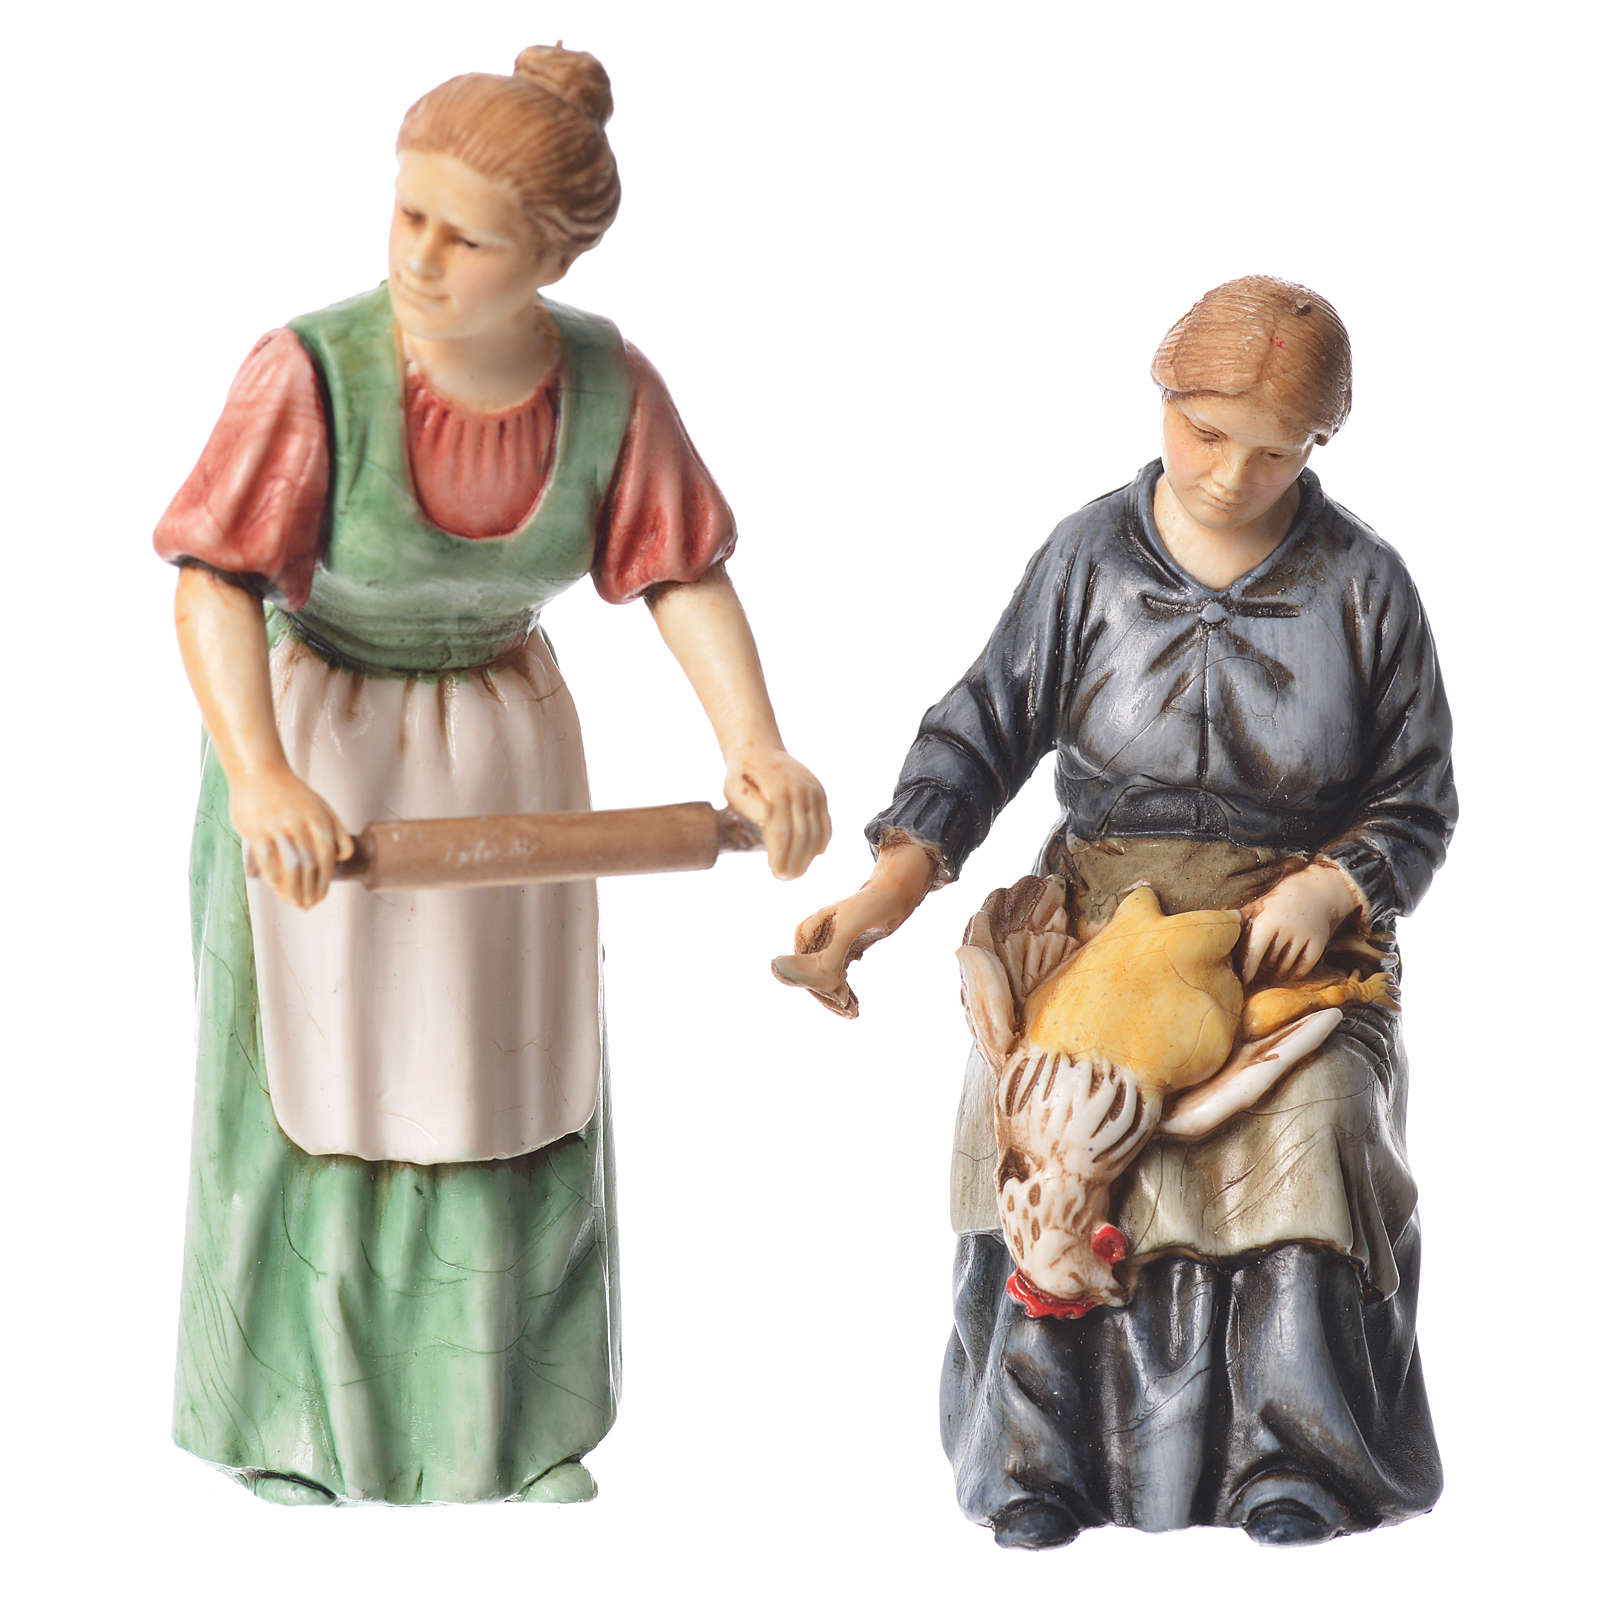 Woman with rolling pin and woman sitting, nativity figurines, 10cm Moranduzzo 4